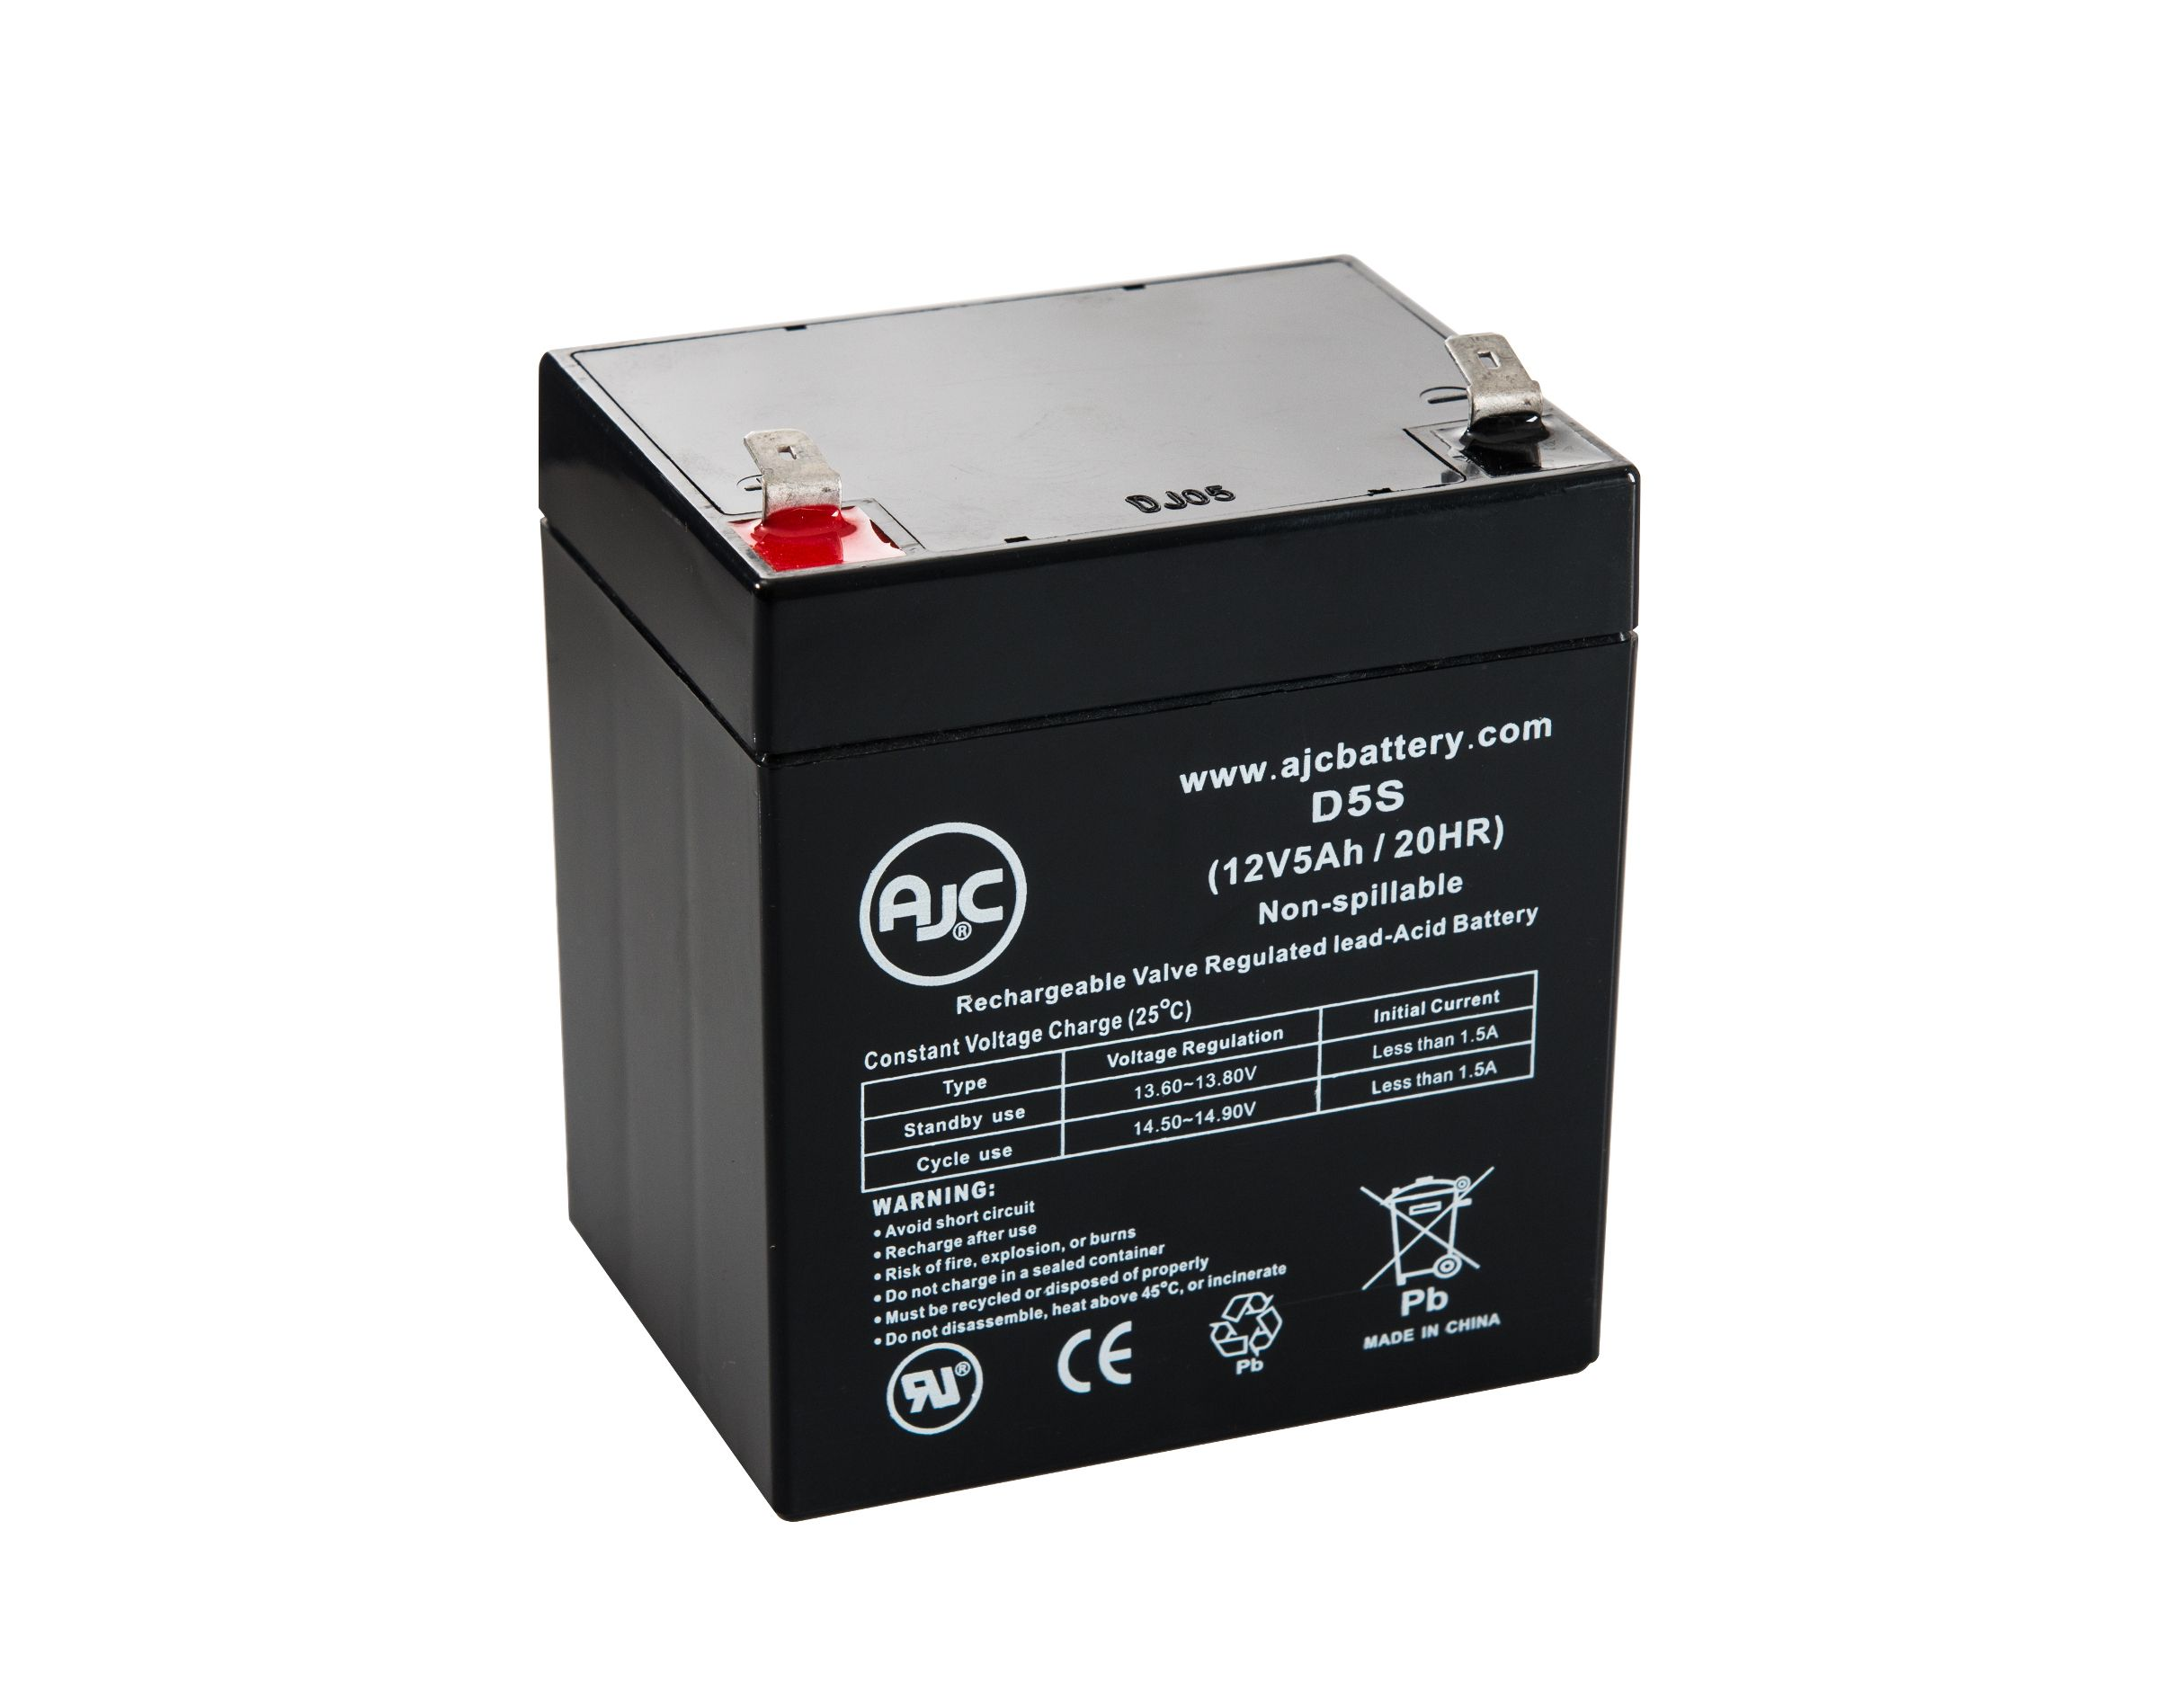 This is an AJC Brand Replacement Alpha Technologies CFR2500 12V 18Ah UPS Battery